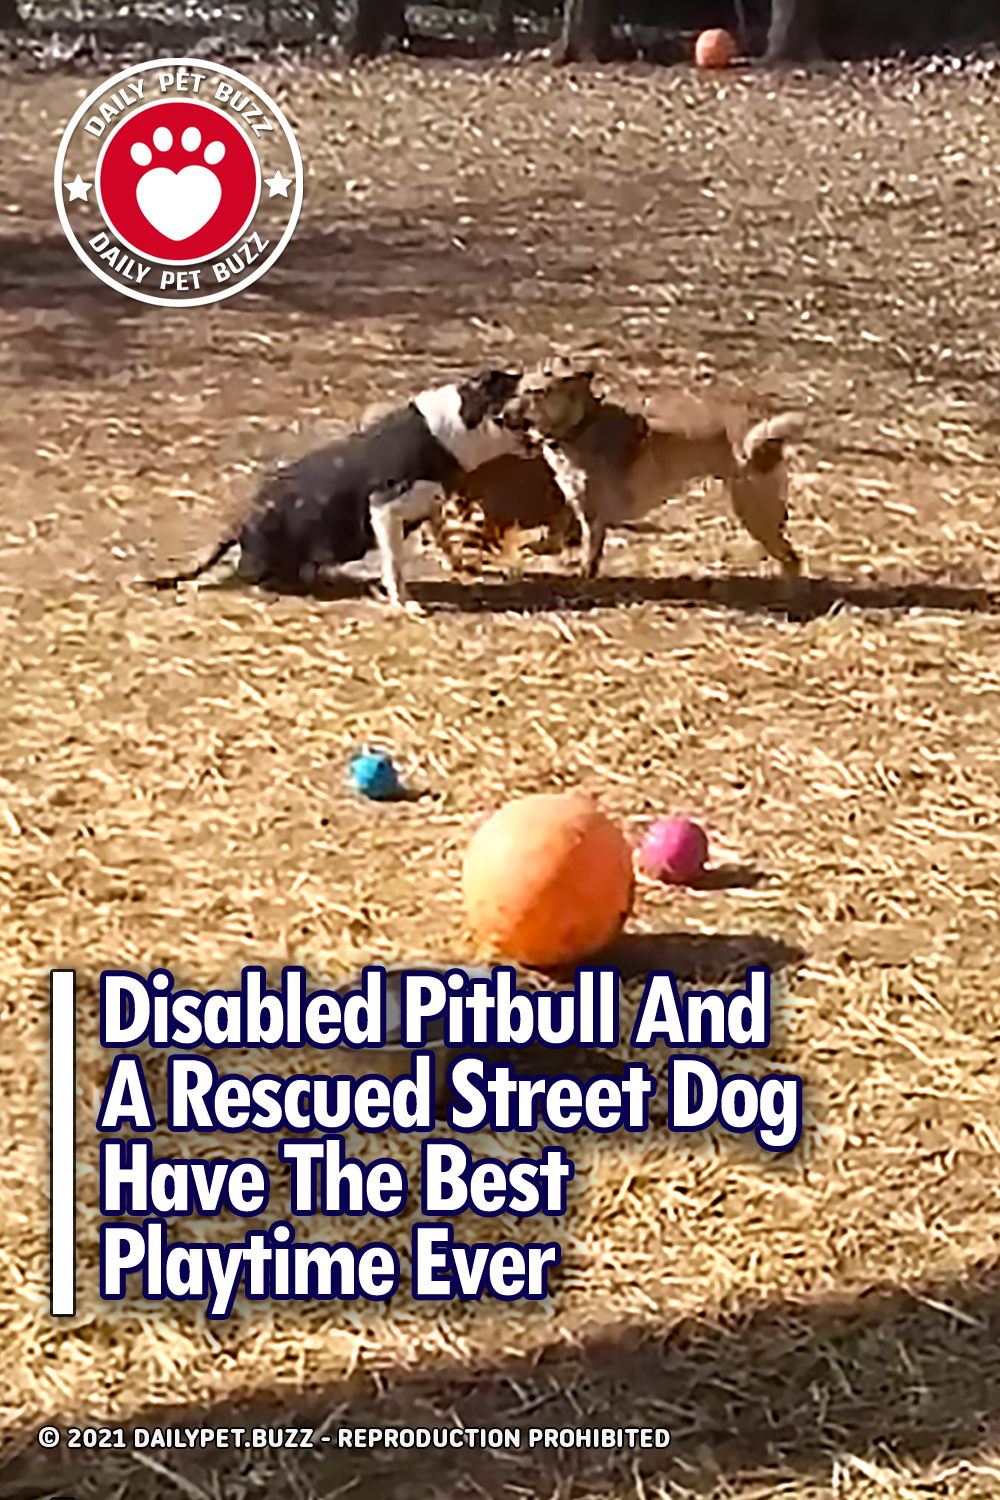 Disabled Pitbull And A Rescued Street Dog Have The Best Playtime Ever